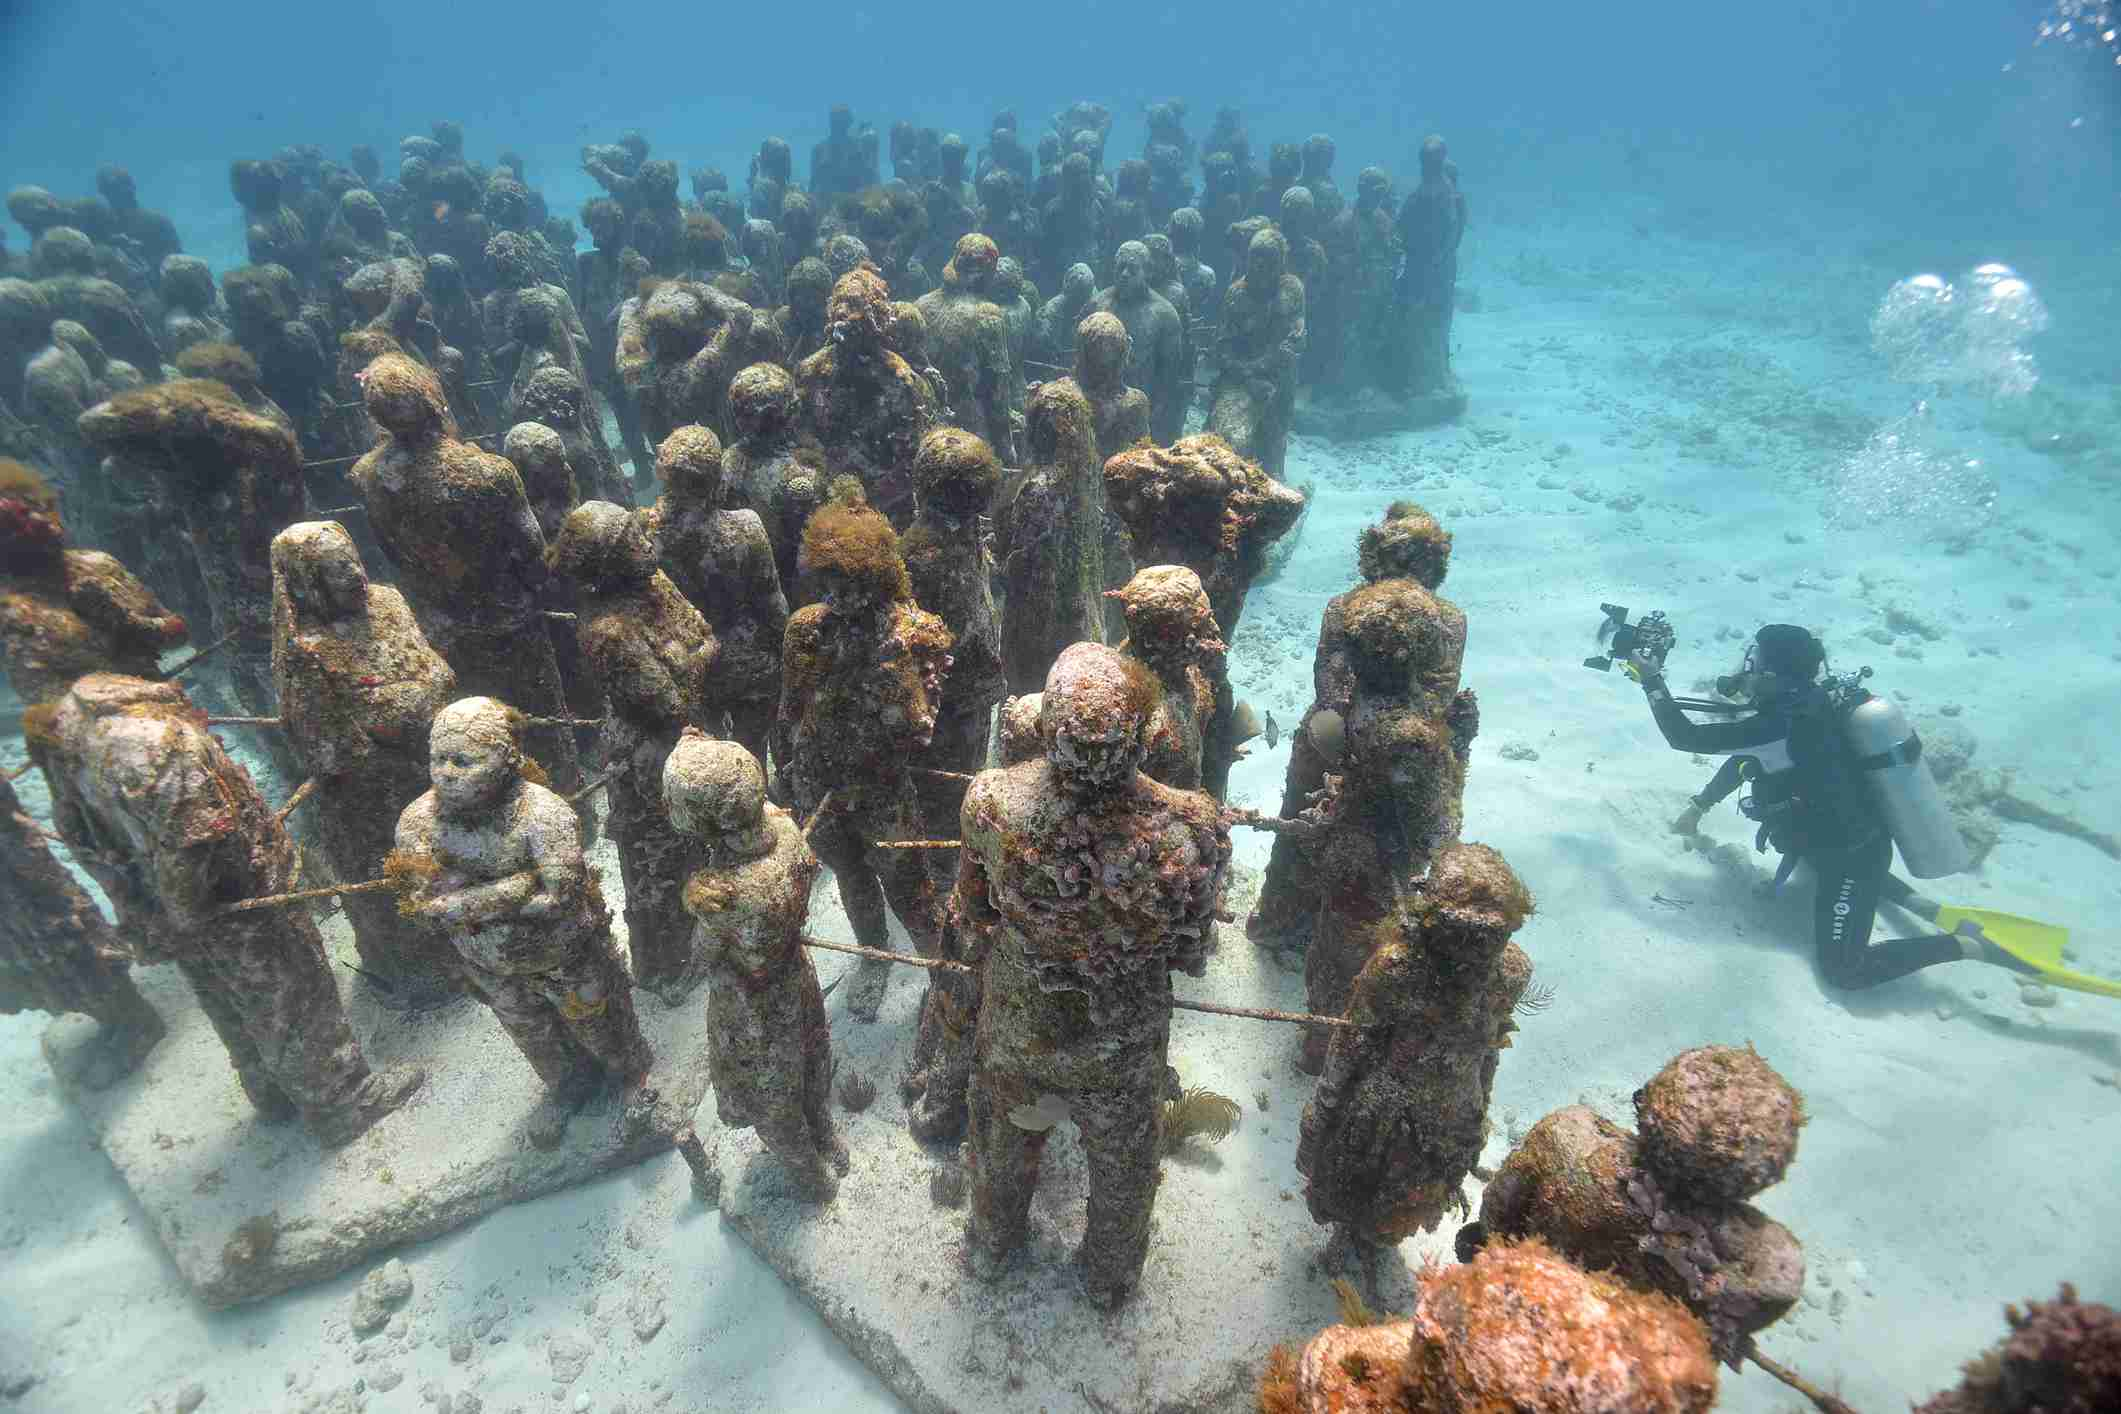 High angle view scuba diver photographing Cancuns underwater statues, Isla Mujeres, Quintana Roo, Mexico